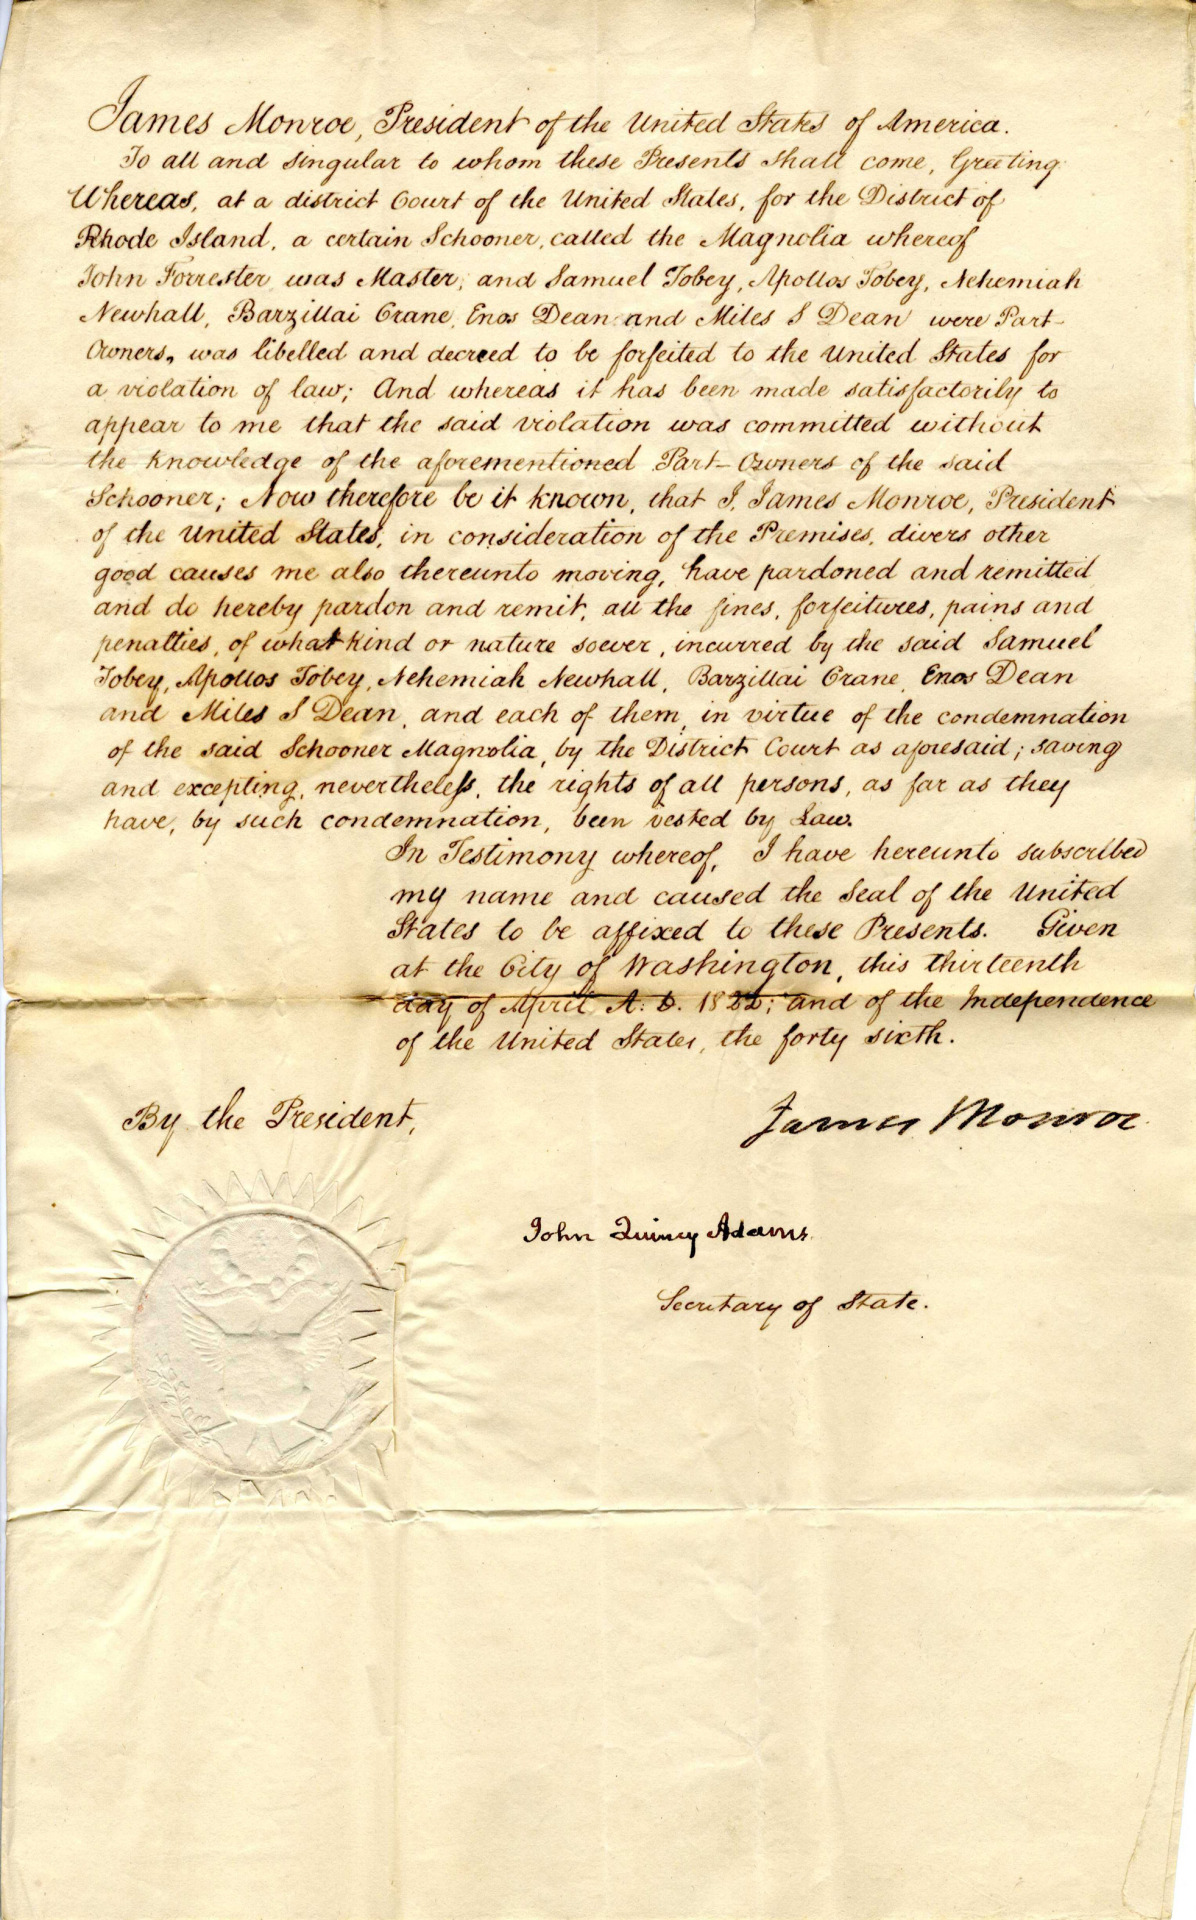 Presidential Pardon Signed by James Monroe and John Quincy Adams, 04/13/1822. Item From: Records of District Courts of the United States. (1790- 01/01/1912). Power of the Pen. One of the powers the president holds is the ability to pardon prisoners. In this case President Monroe pardoned three individuals. Source: http://go.usa.gov/DyCH